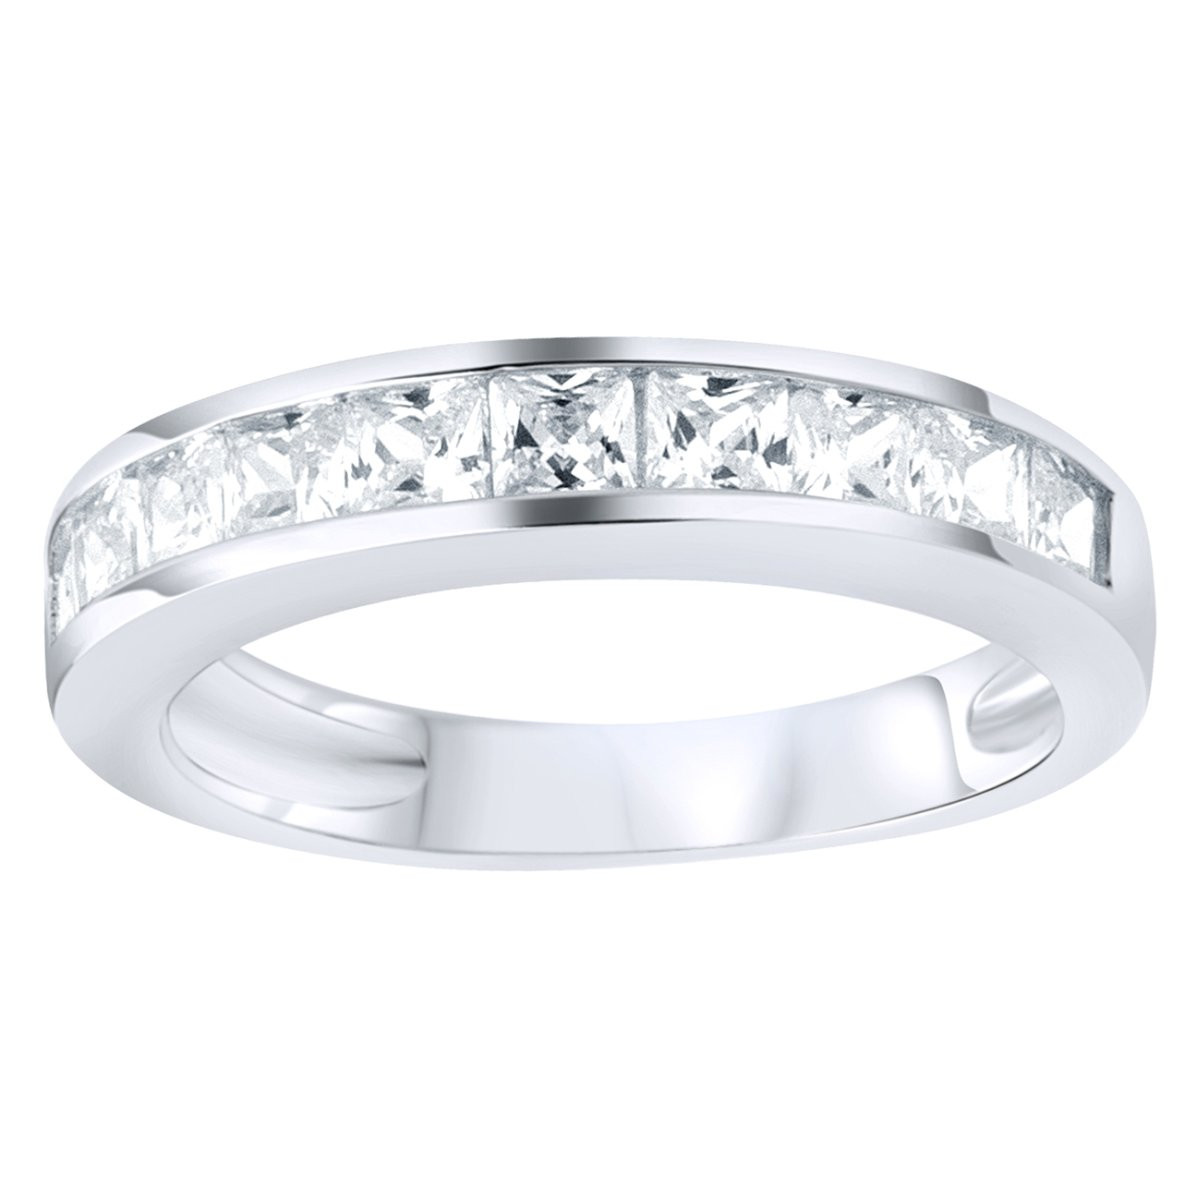 Iced Out Sterling 925 Silver Pave Ring - Princess Zirconia - 10